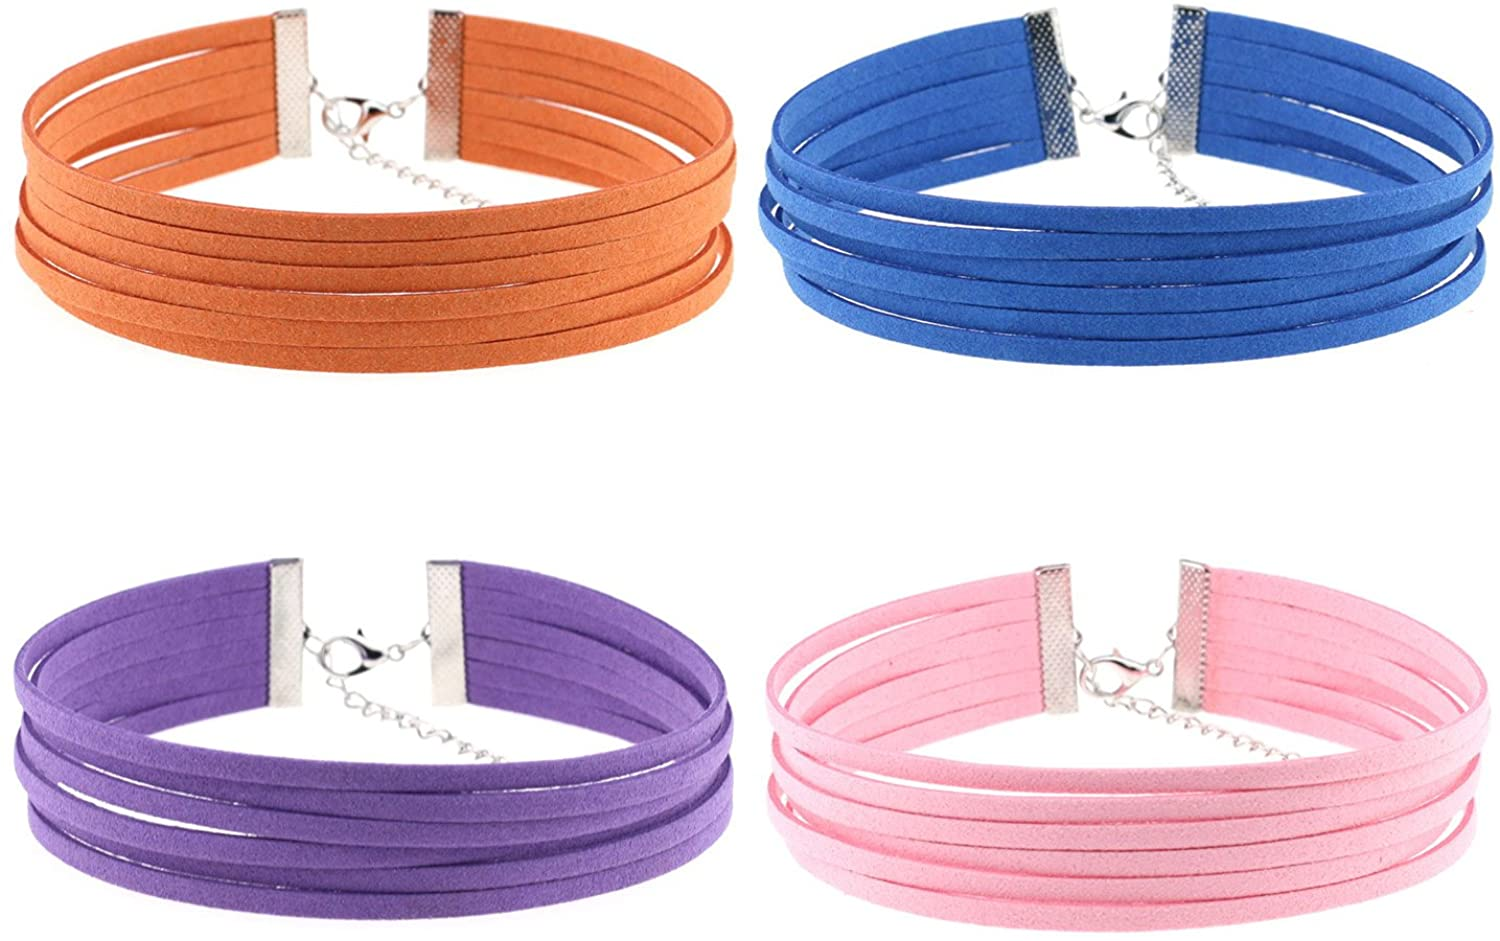 FM FM42 Cloth Simulated Leather Multilayer Adjustable Choker Necklace 1